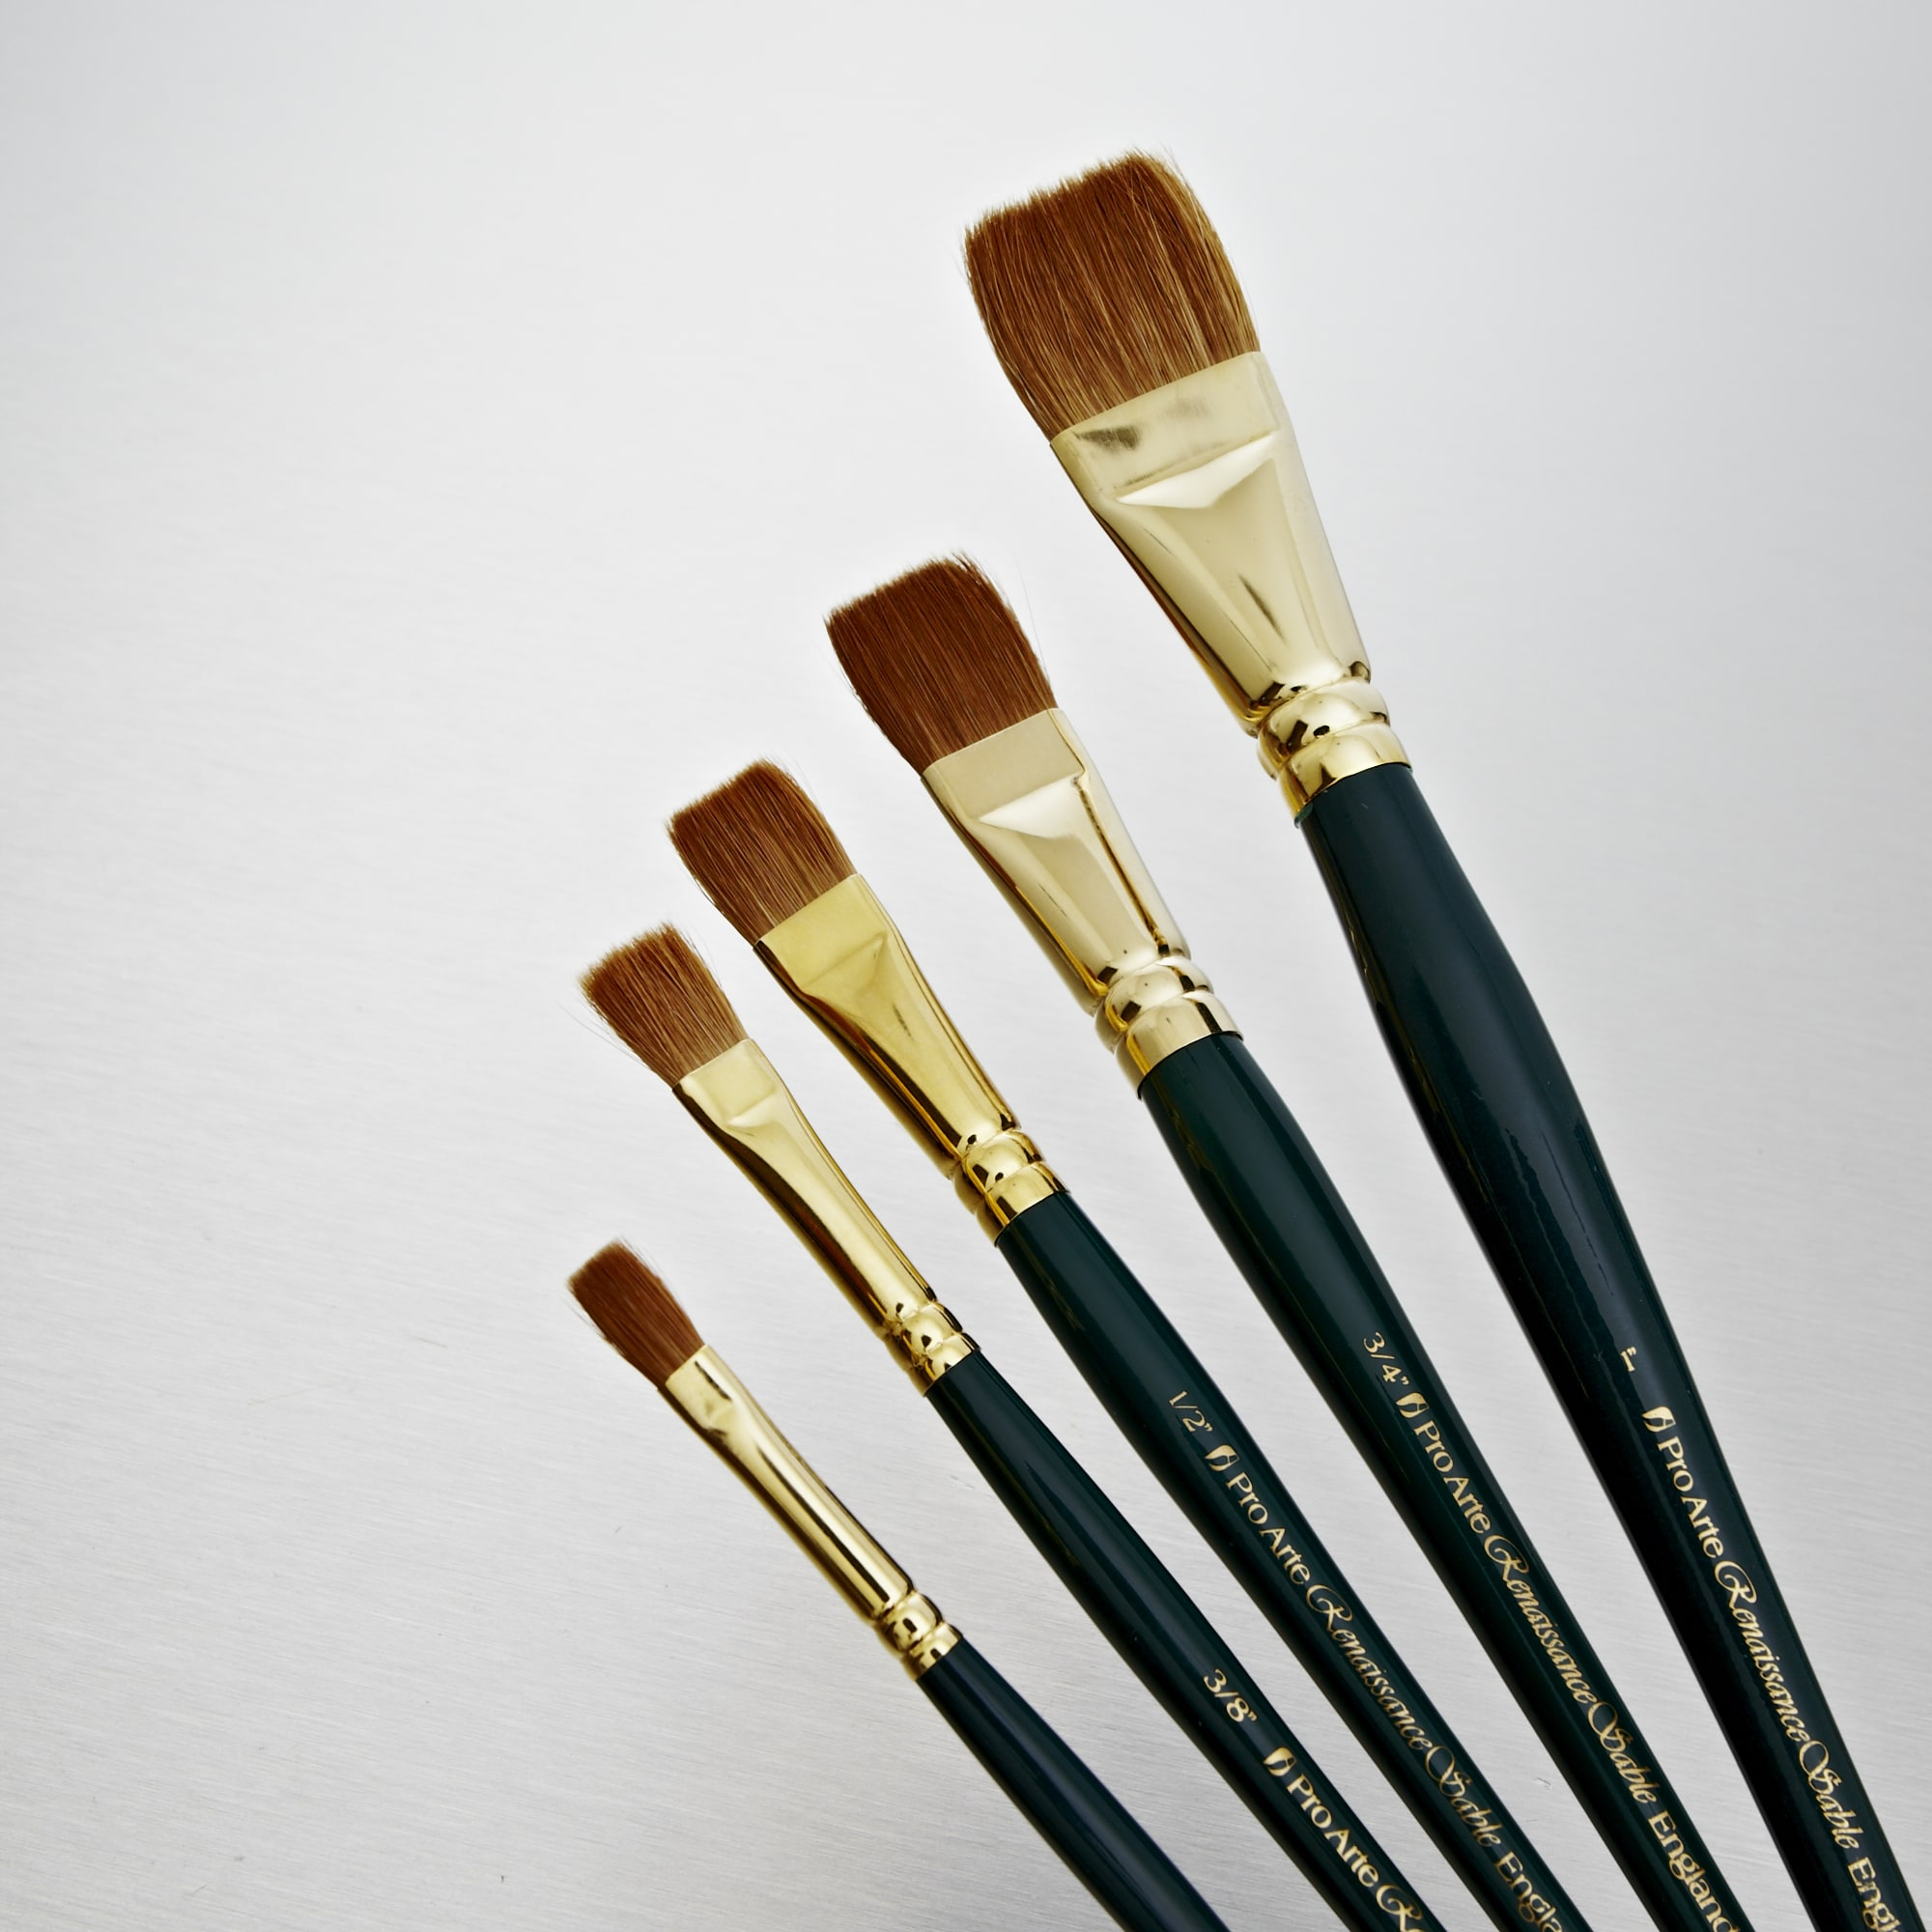 Liquitex Paint Brushes